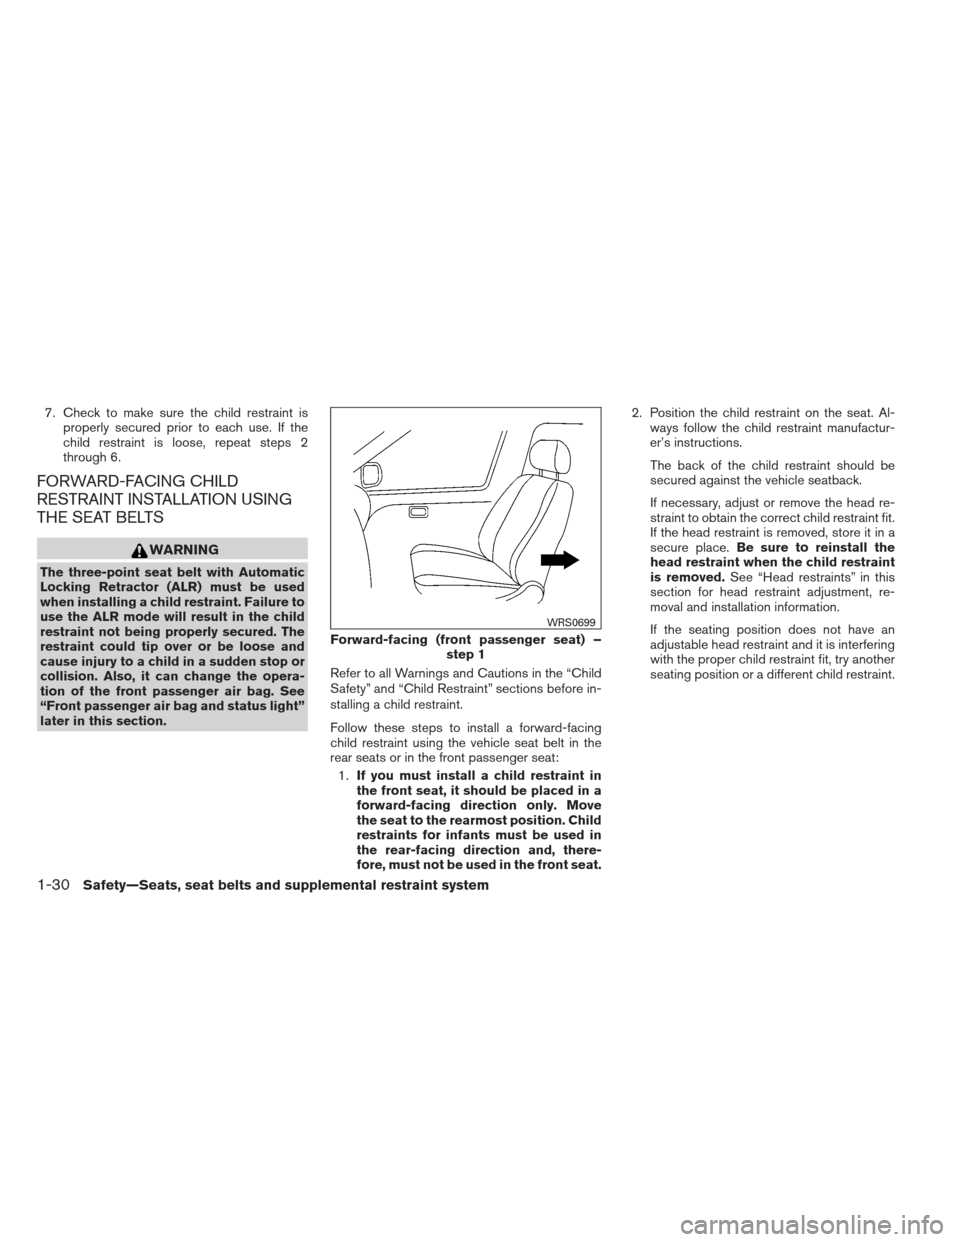 NISSAN ALTIMA 2013 L33 / 5.G Service Manual 7. Check to make sure the child restraint isproperly secured prior to each use. If the child restraint is loose, repeat steps 2 through 6. FORWARD-FACING CHILD RESTRAINT INSTALLATION USING THE SEAT BE